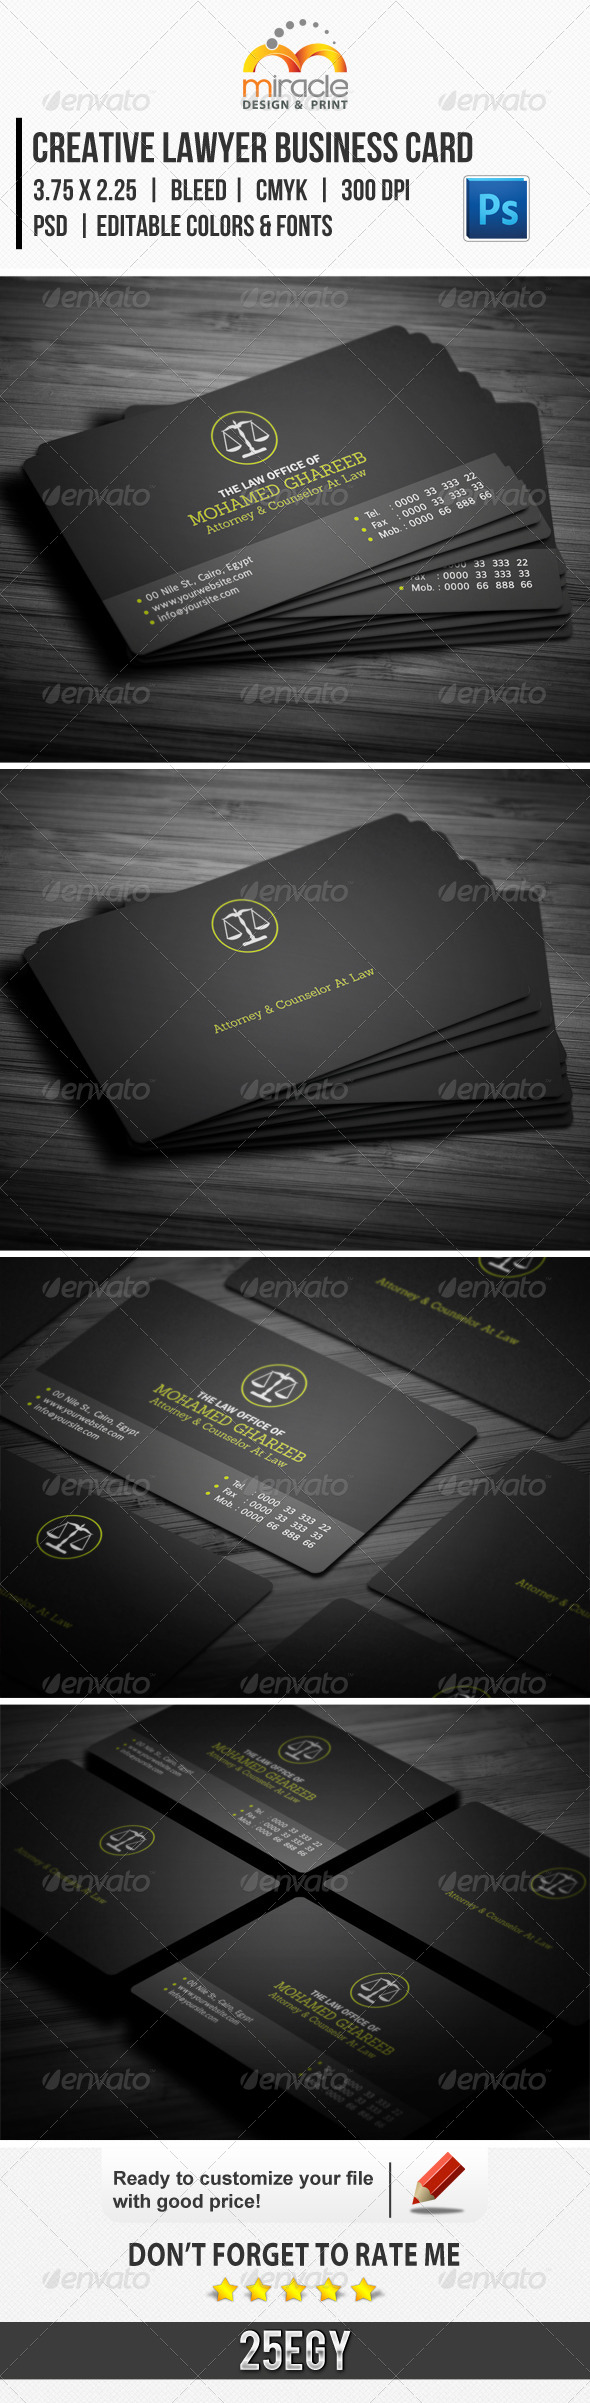 Creative Lawyer Business Card - Industry Specific Business Cards